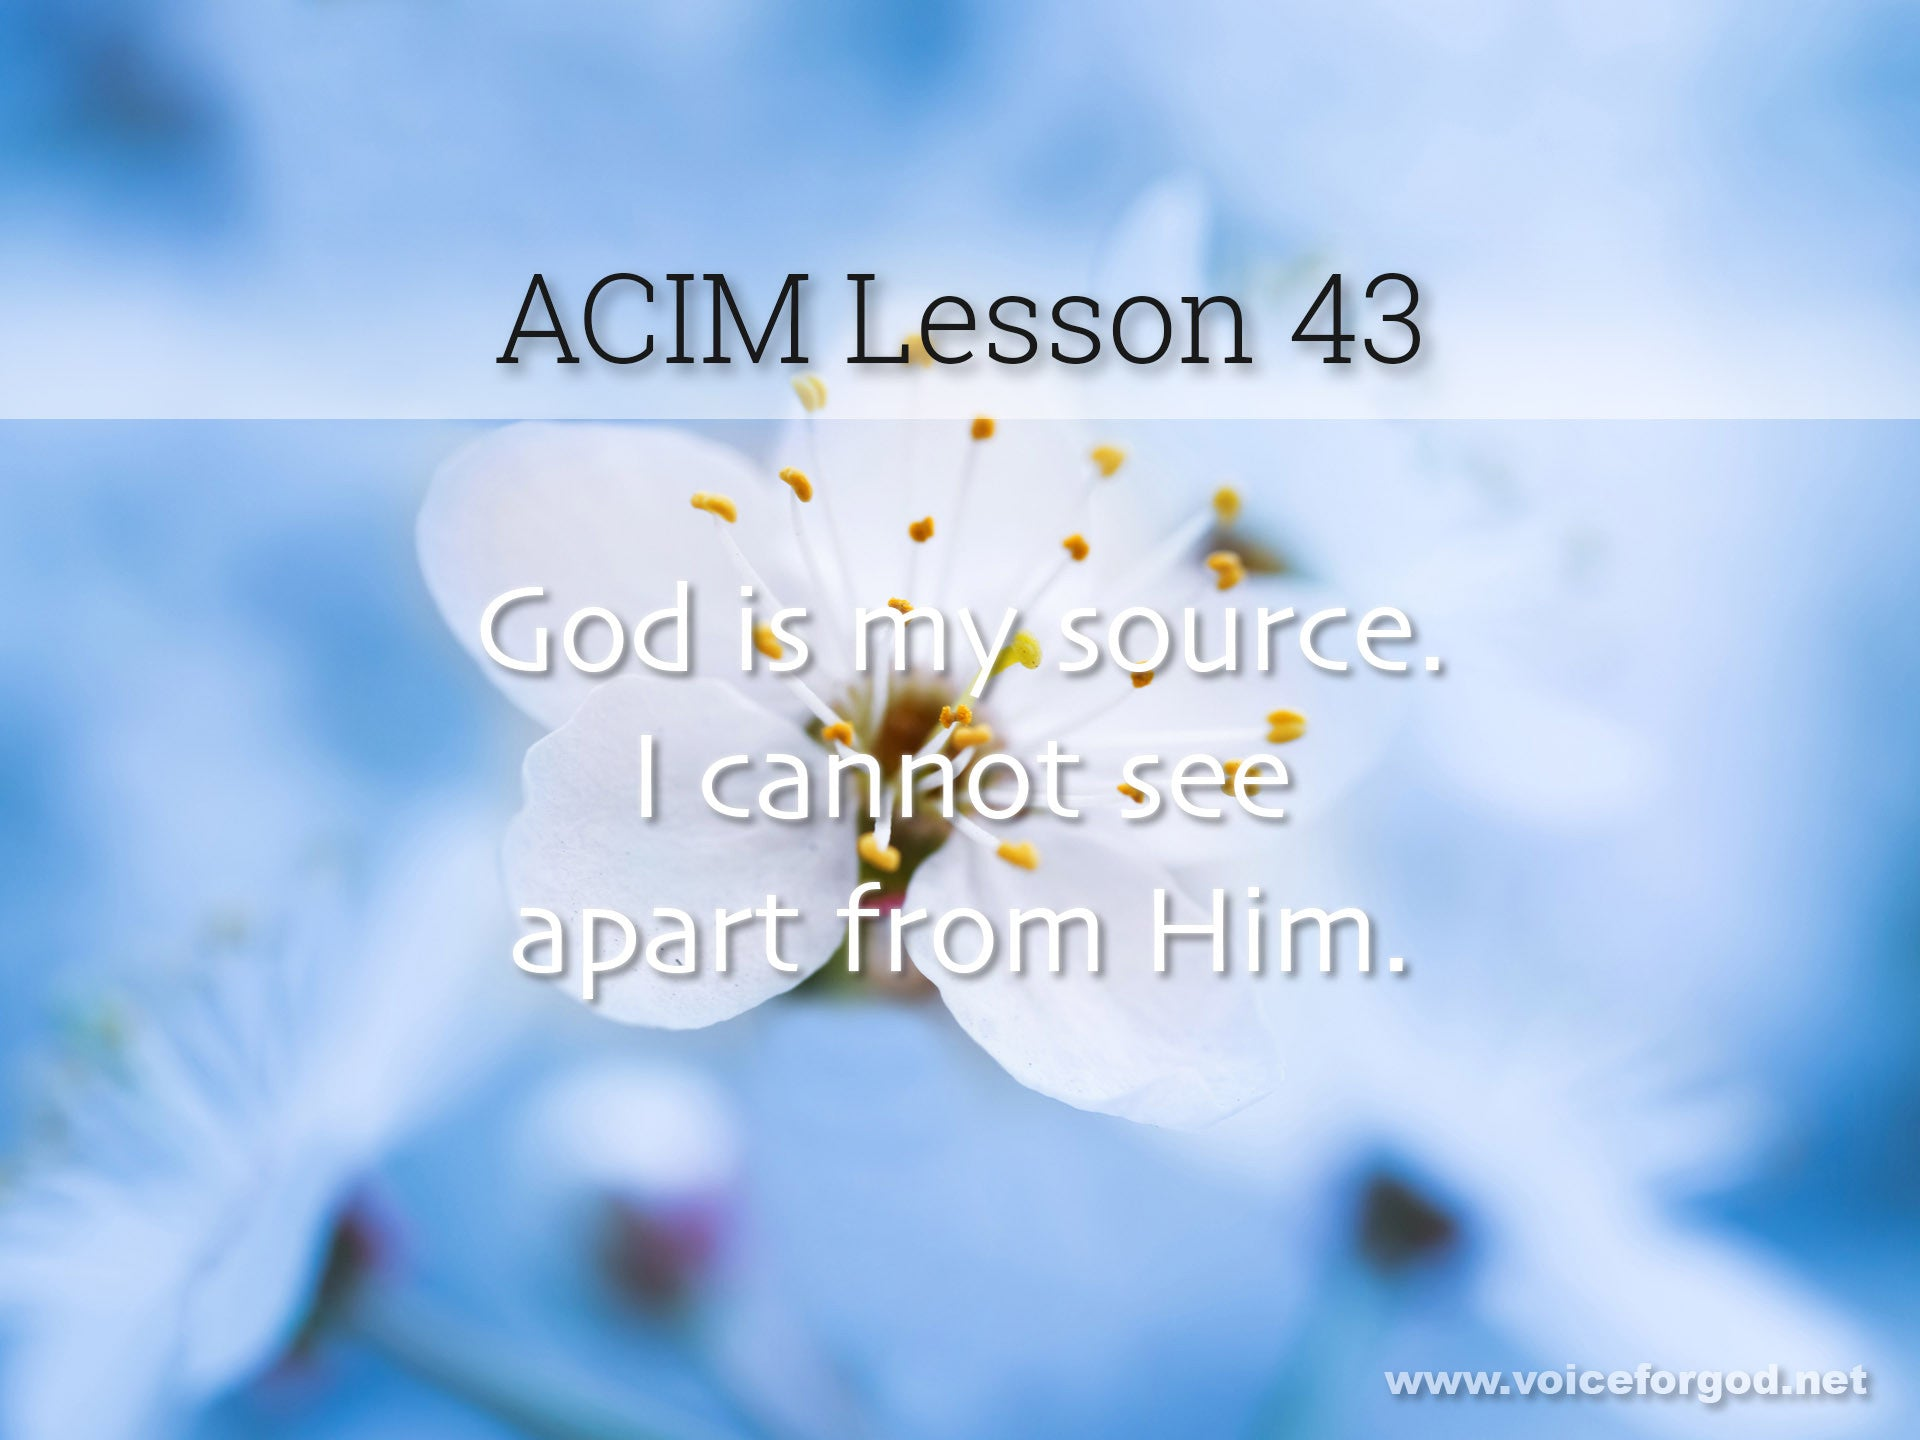 ACIM Lesson 43 - A Course in Miracles Workbook Lesson 43